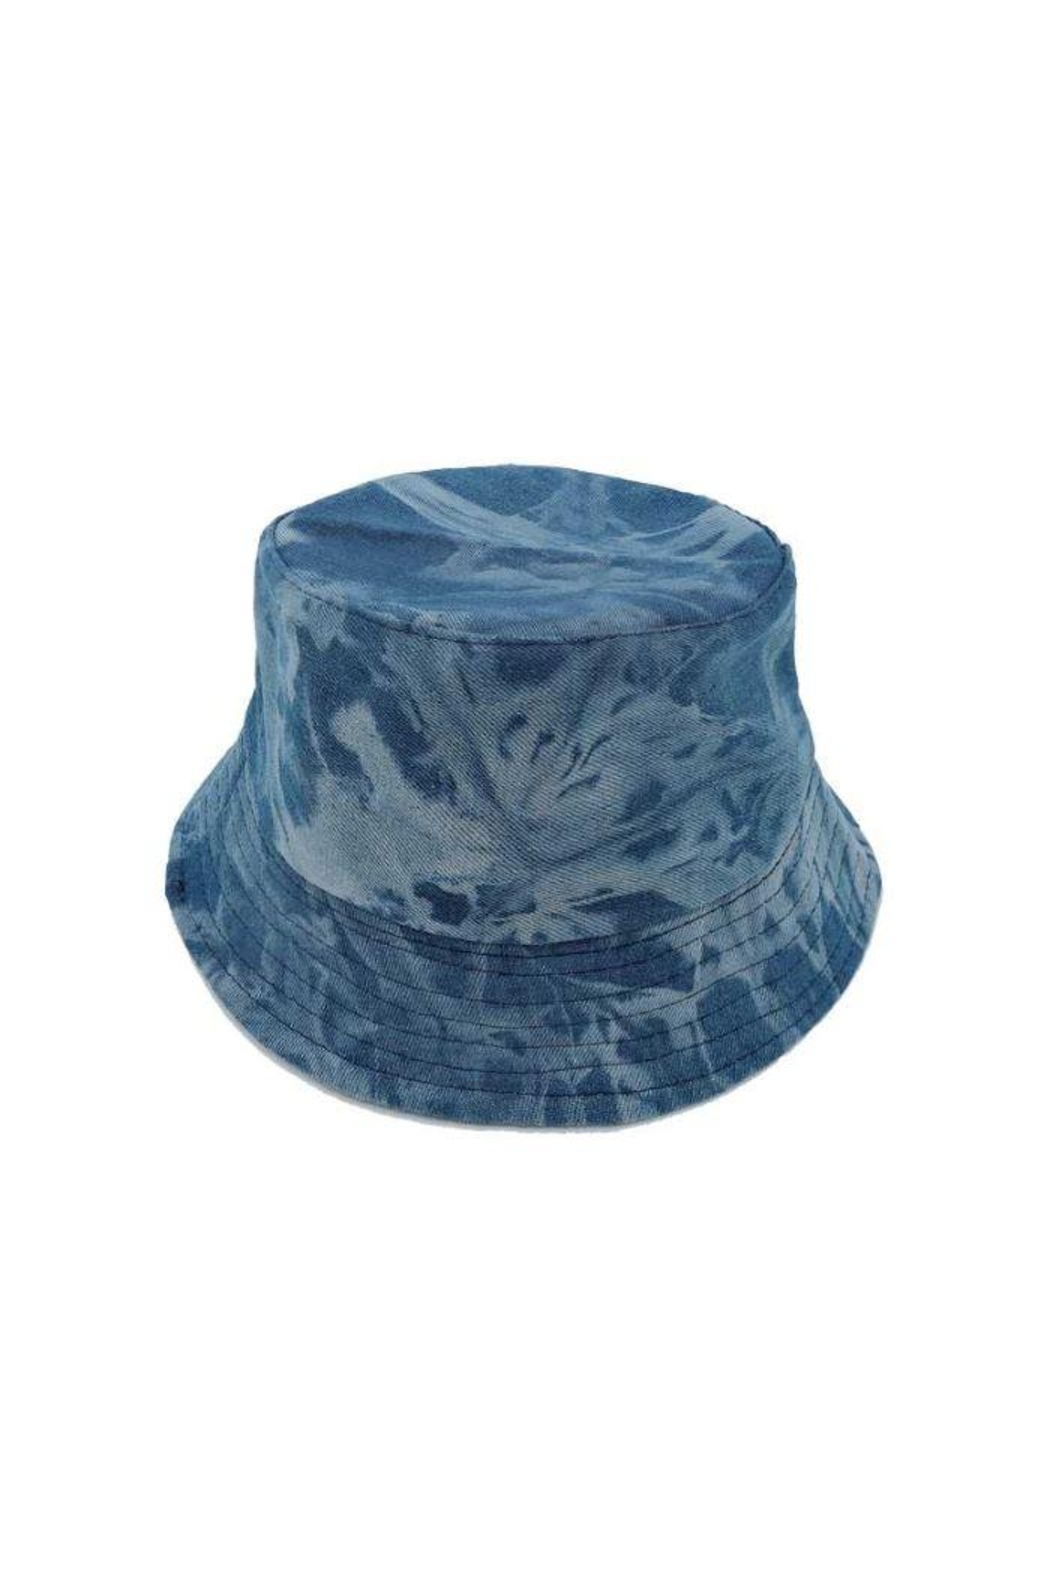 JOIA TRADING INC Washed Denim Bucket Hat - Main Image